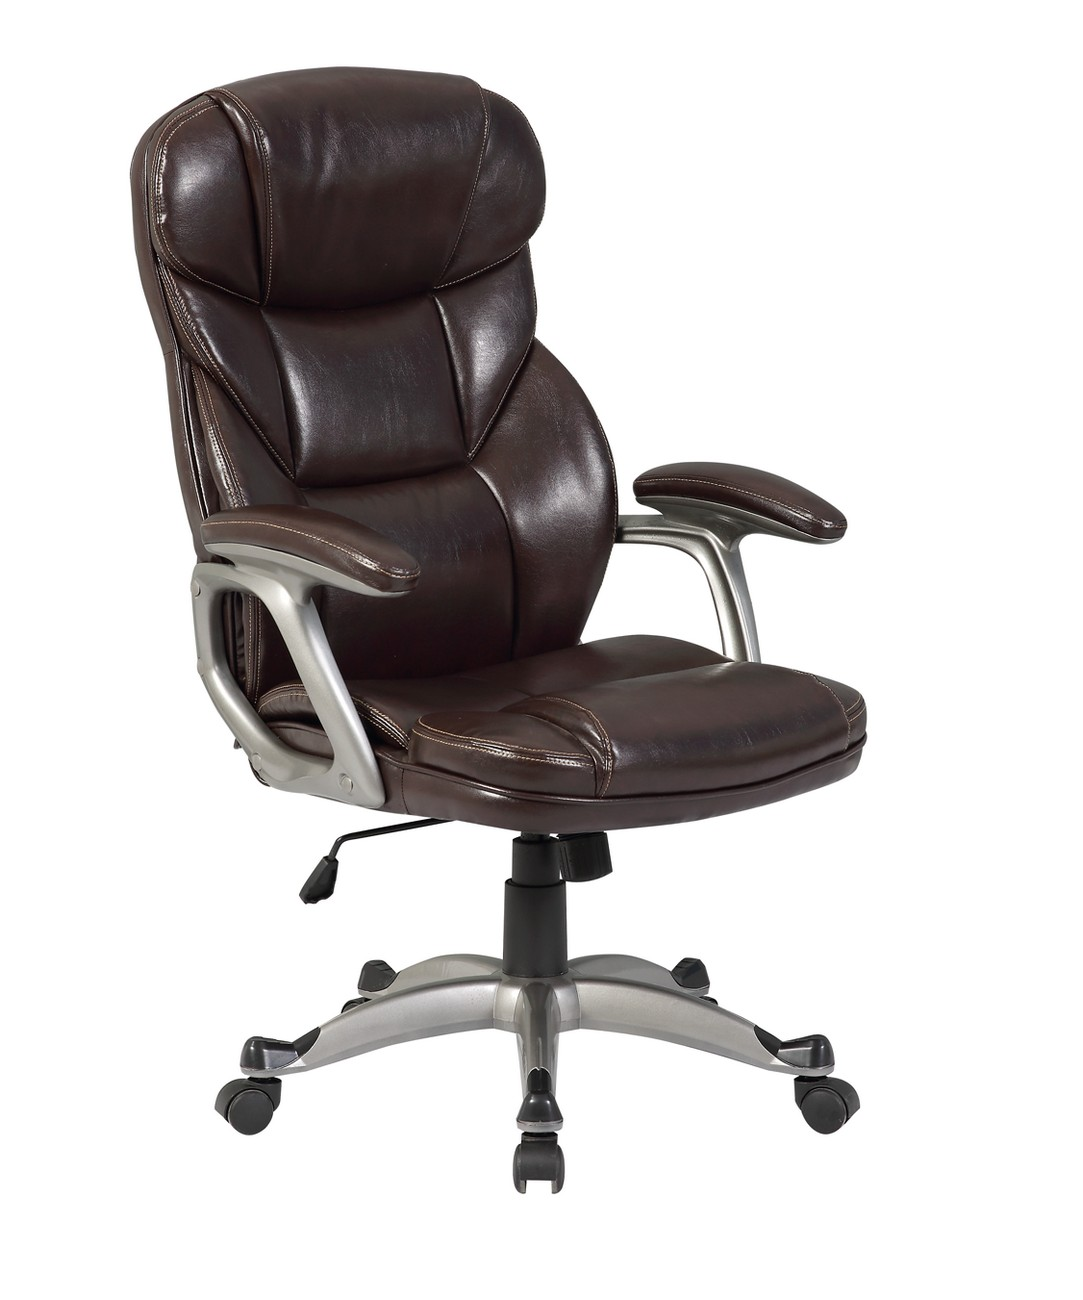 Comfortable Computer Chairs Executive Office Chair Pu Leather Ergonomic High Back Desk